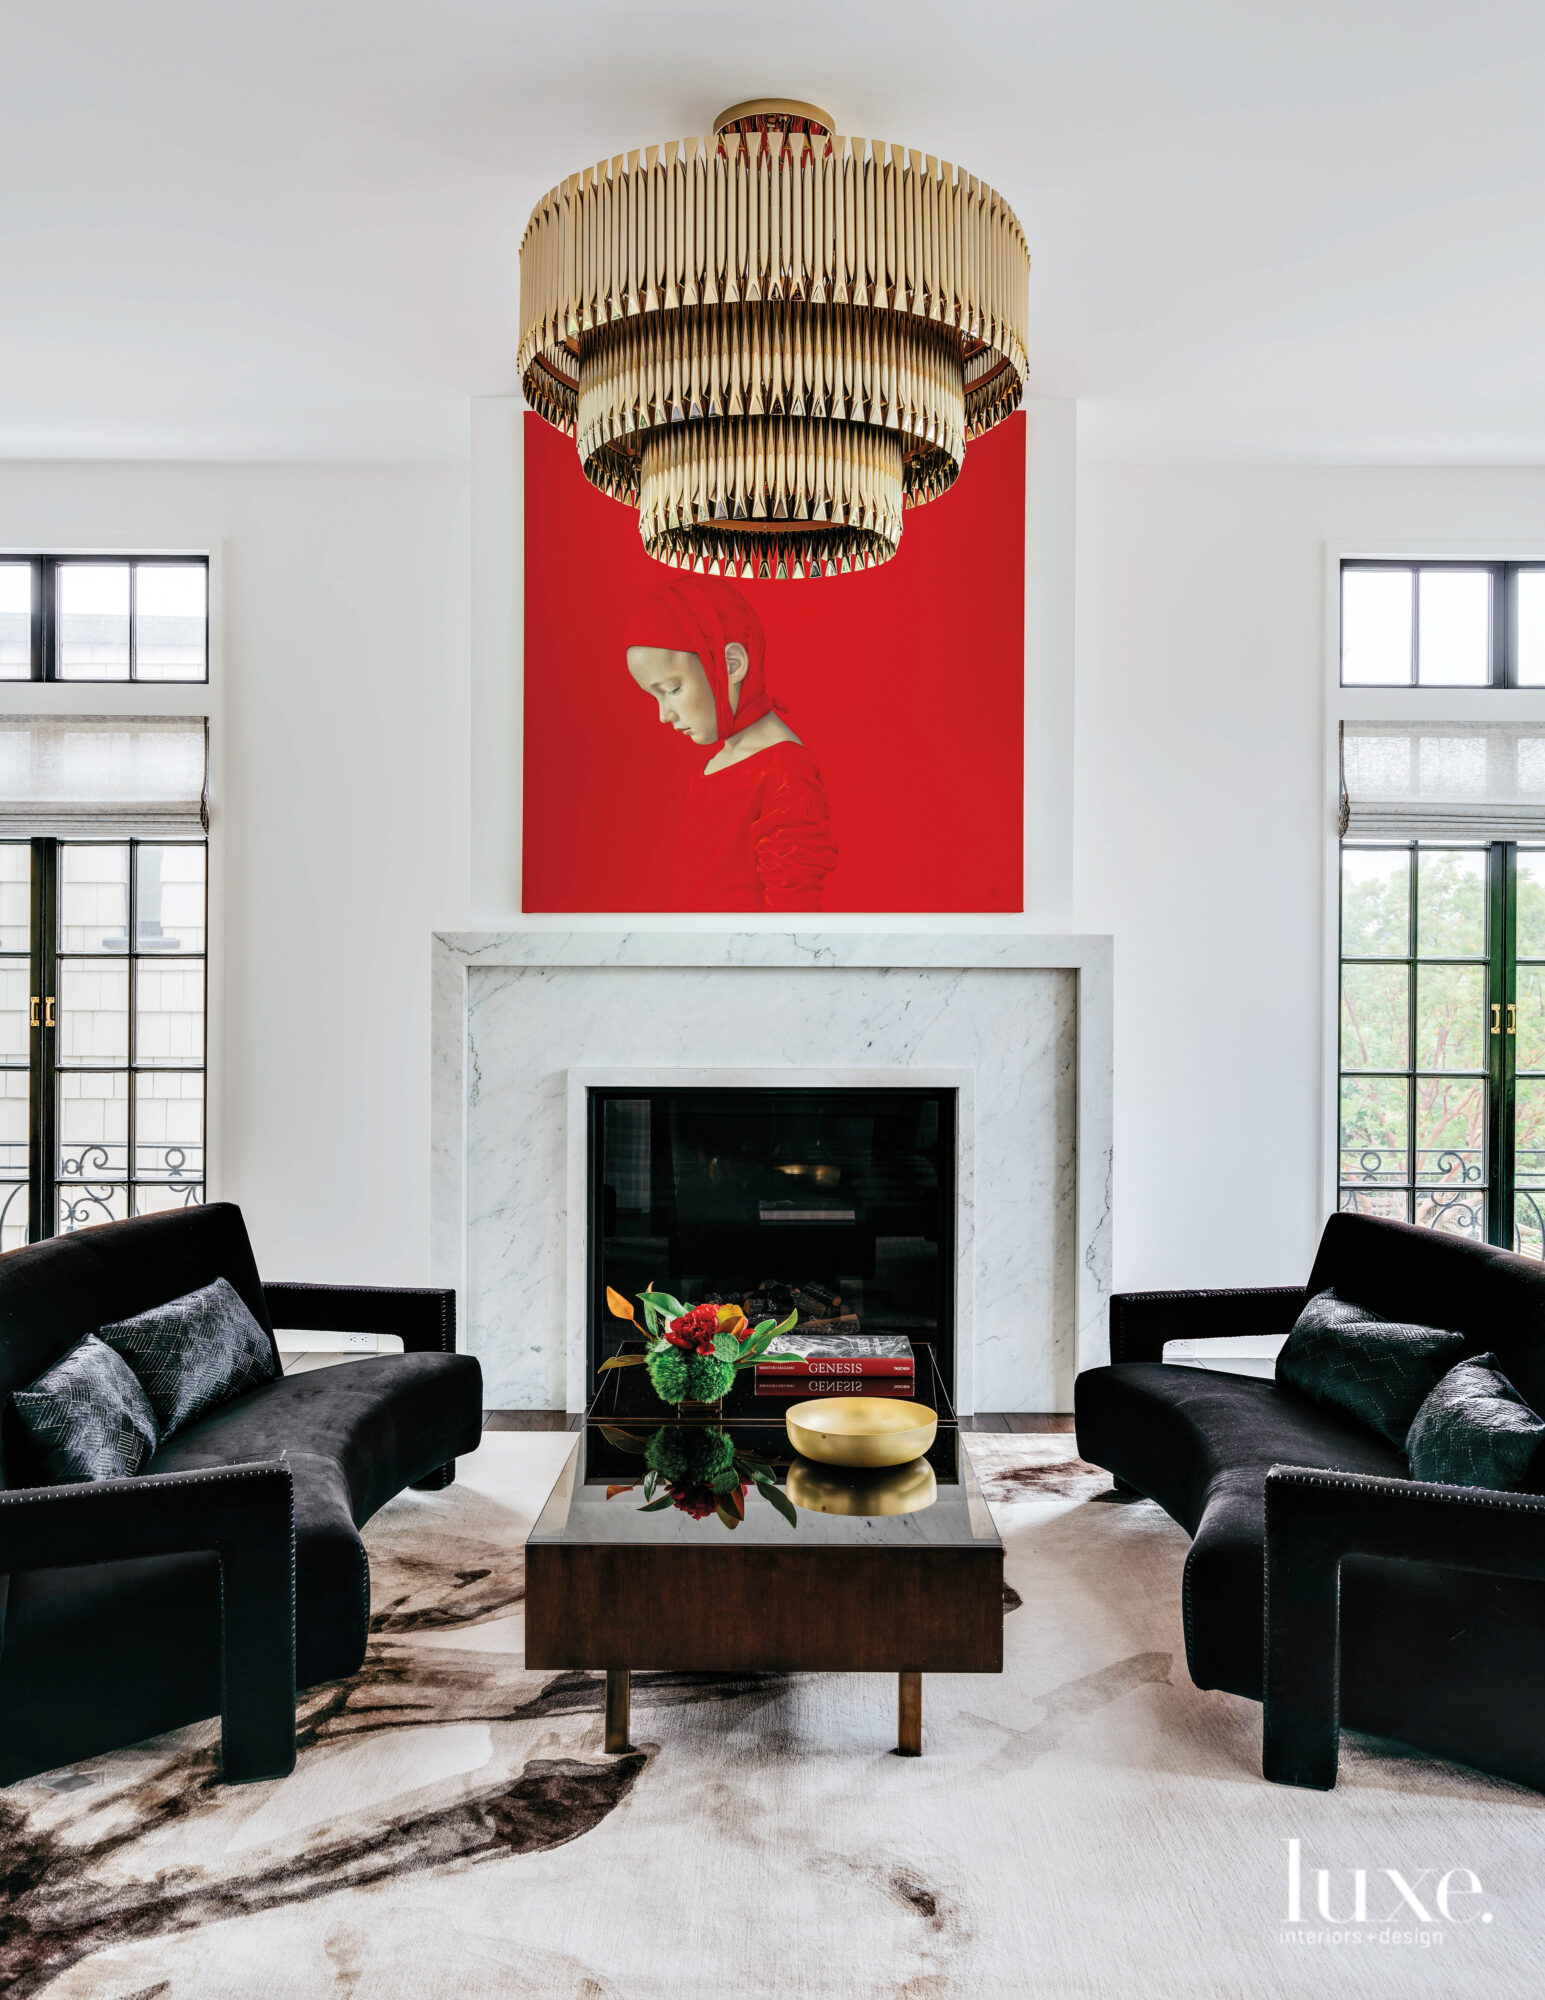 A black and white living room is the backdrop for a bright red artwork.